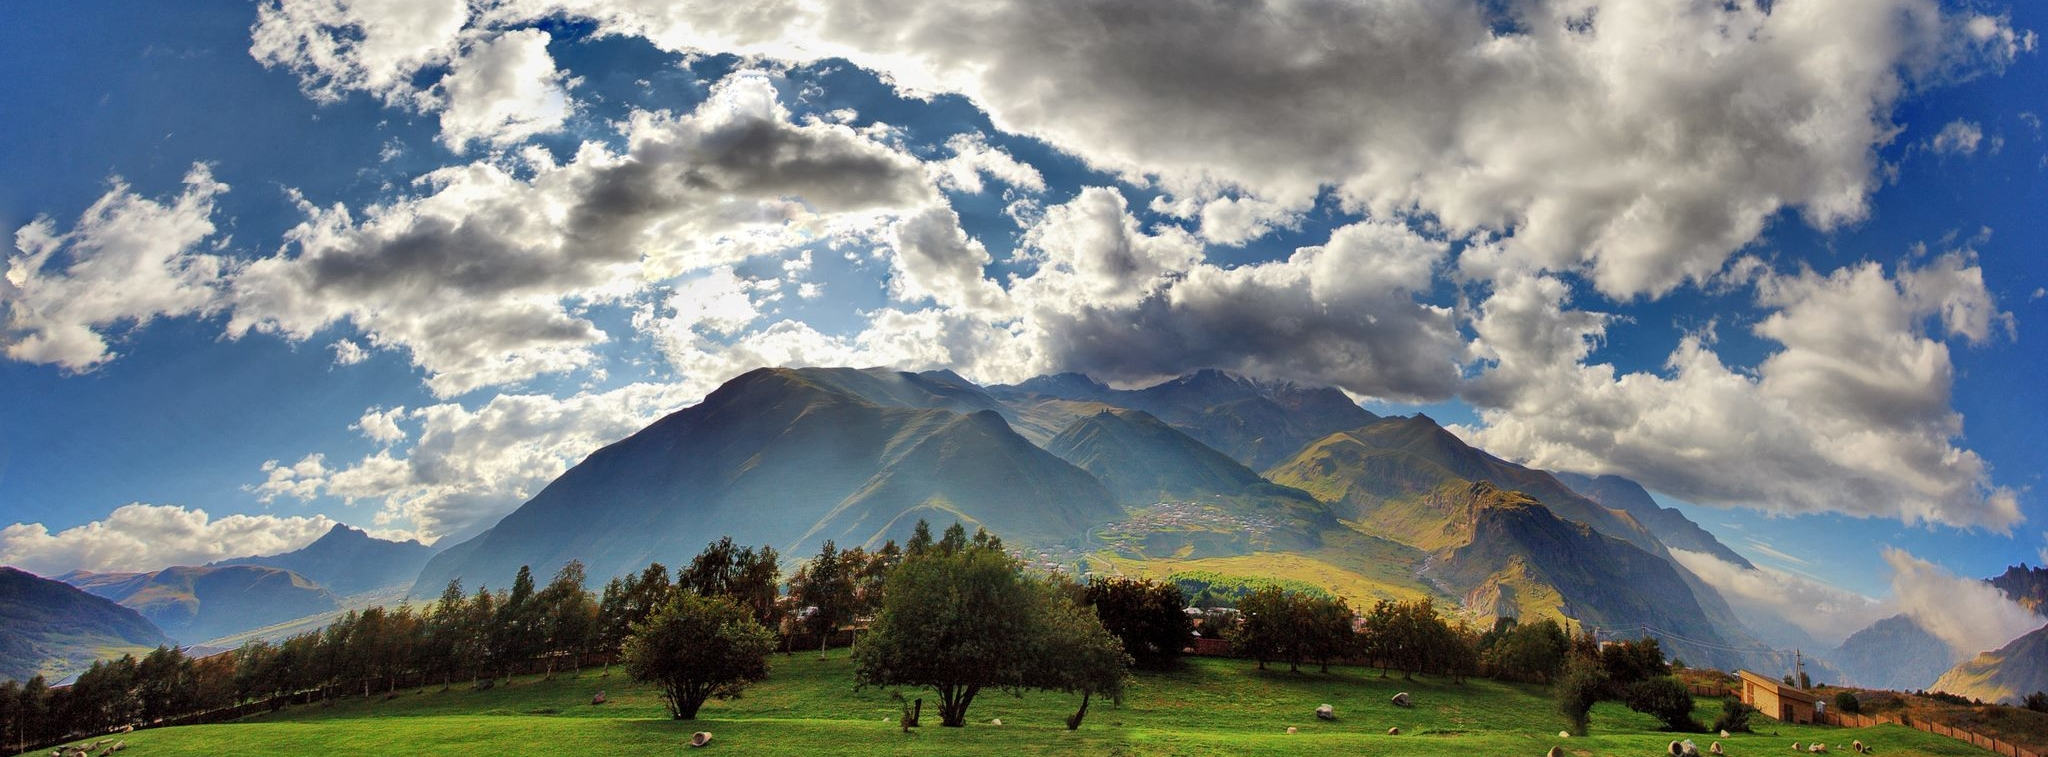 georgia-kazbegi-clouds-sky.jpg